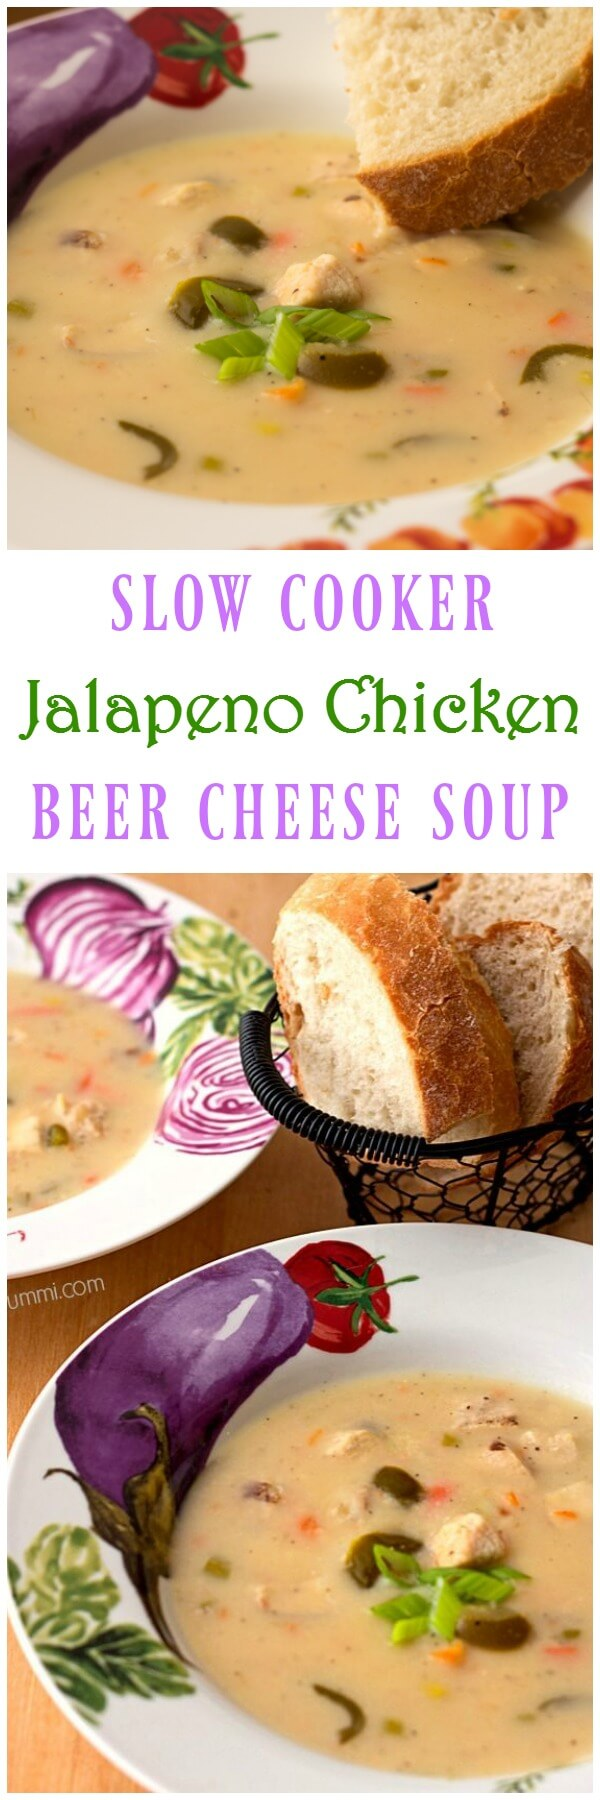 Jalapeno Chicken Beer Cheese soup is made right in your slow cooker, Instant Pot, multicooker, or Crock Pot. It'll warm you up on the coldest of days! | ItsYummi.com